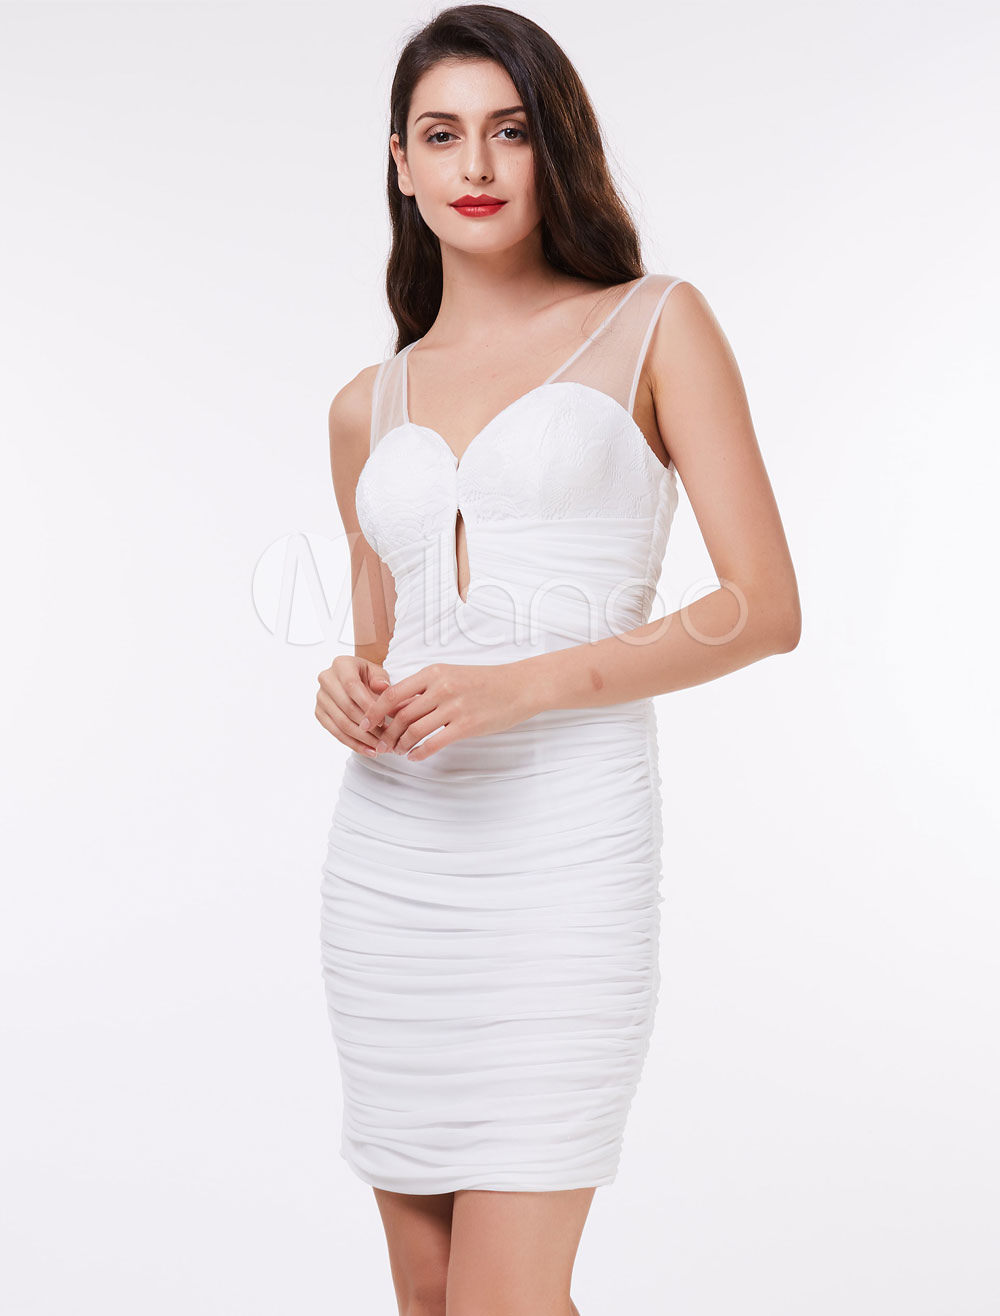 Cocktail Dresses White Sheath Column Ruched Lace Cut Out Illusion Short Party Dress (Wedding Cheap Party Dress) photo